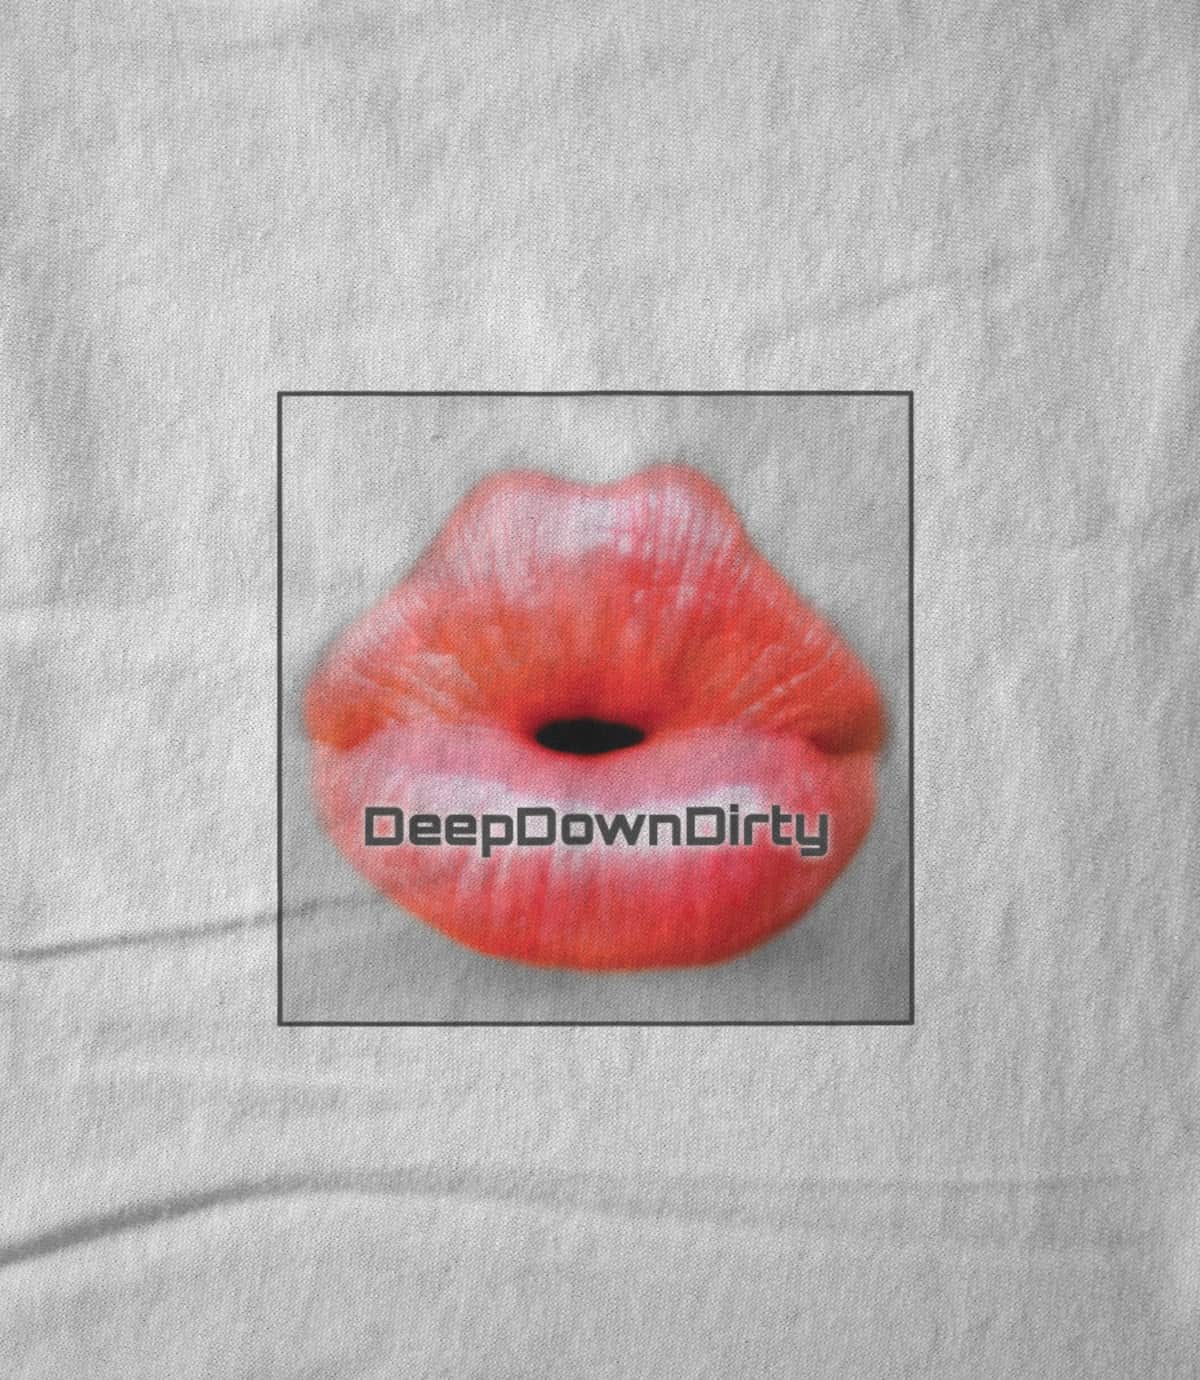 Deepdowndirty record label classic square 1523433605